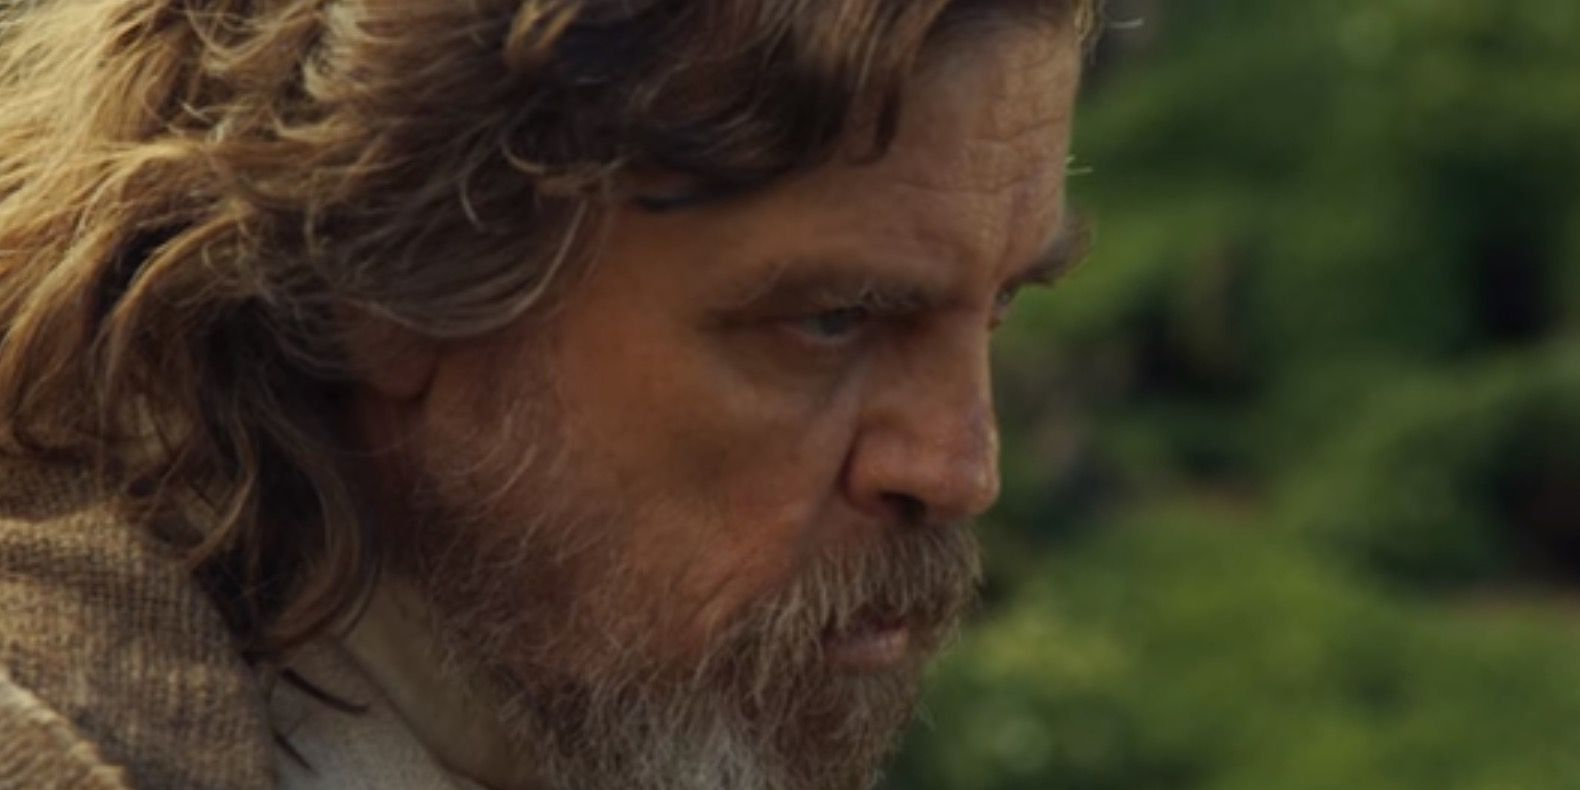 Mark Hamill as Luke Skywalker in Star Wars Episode VIII